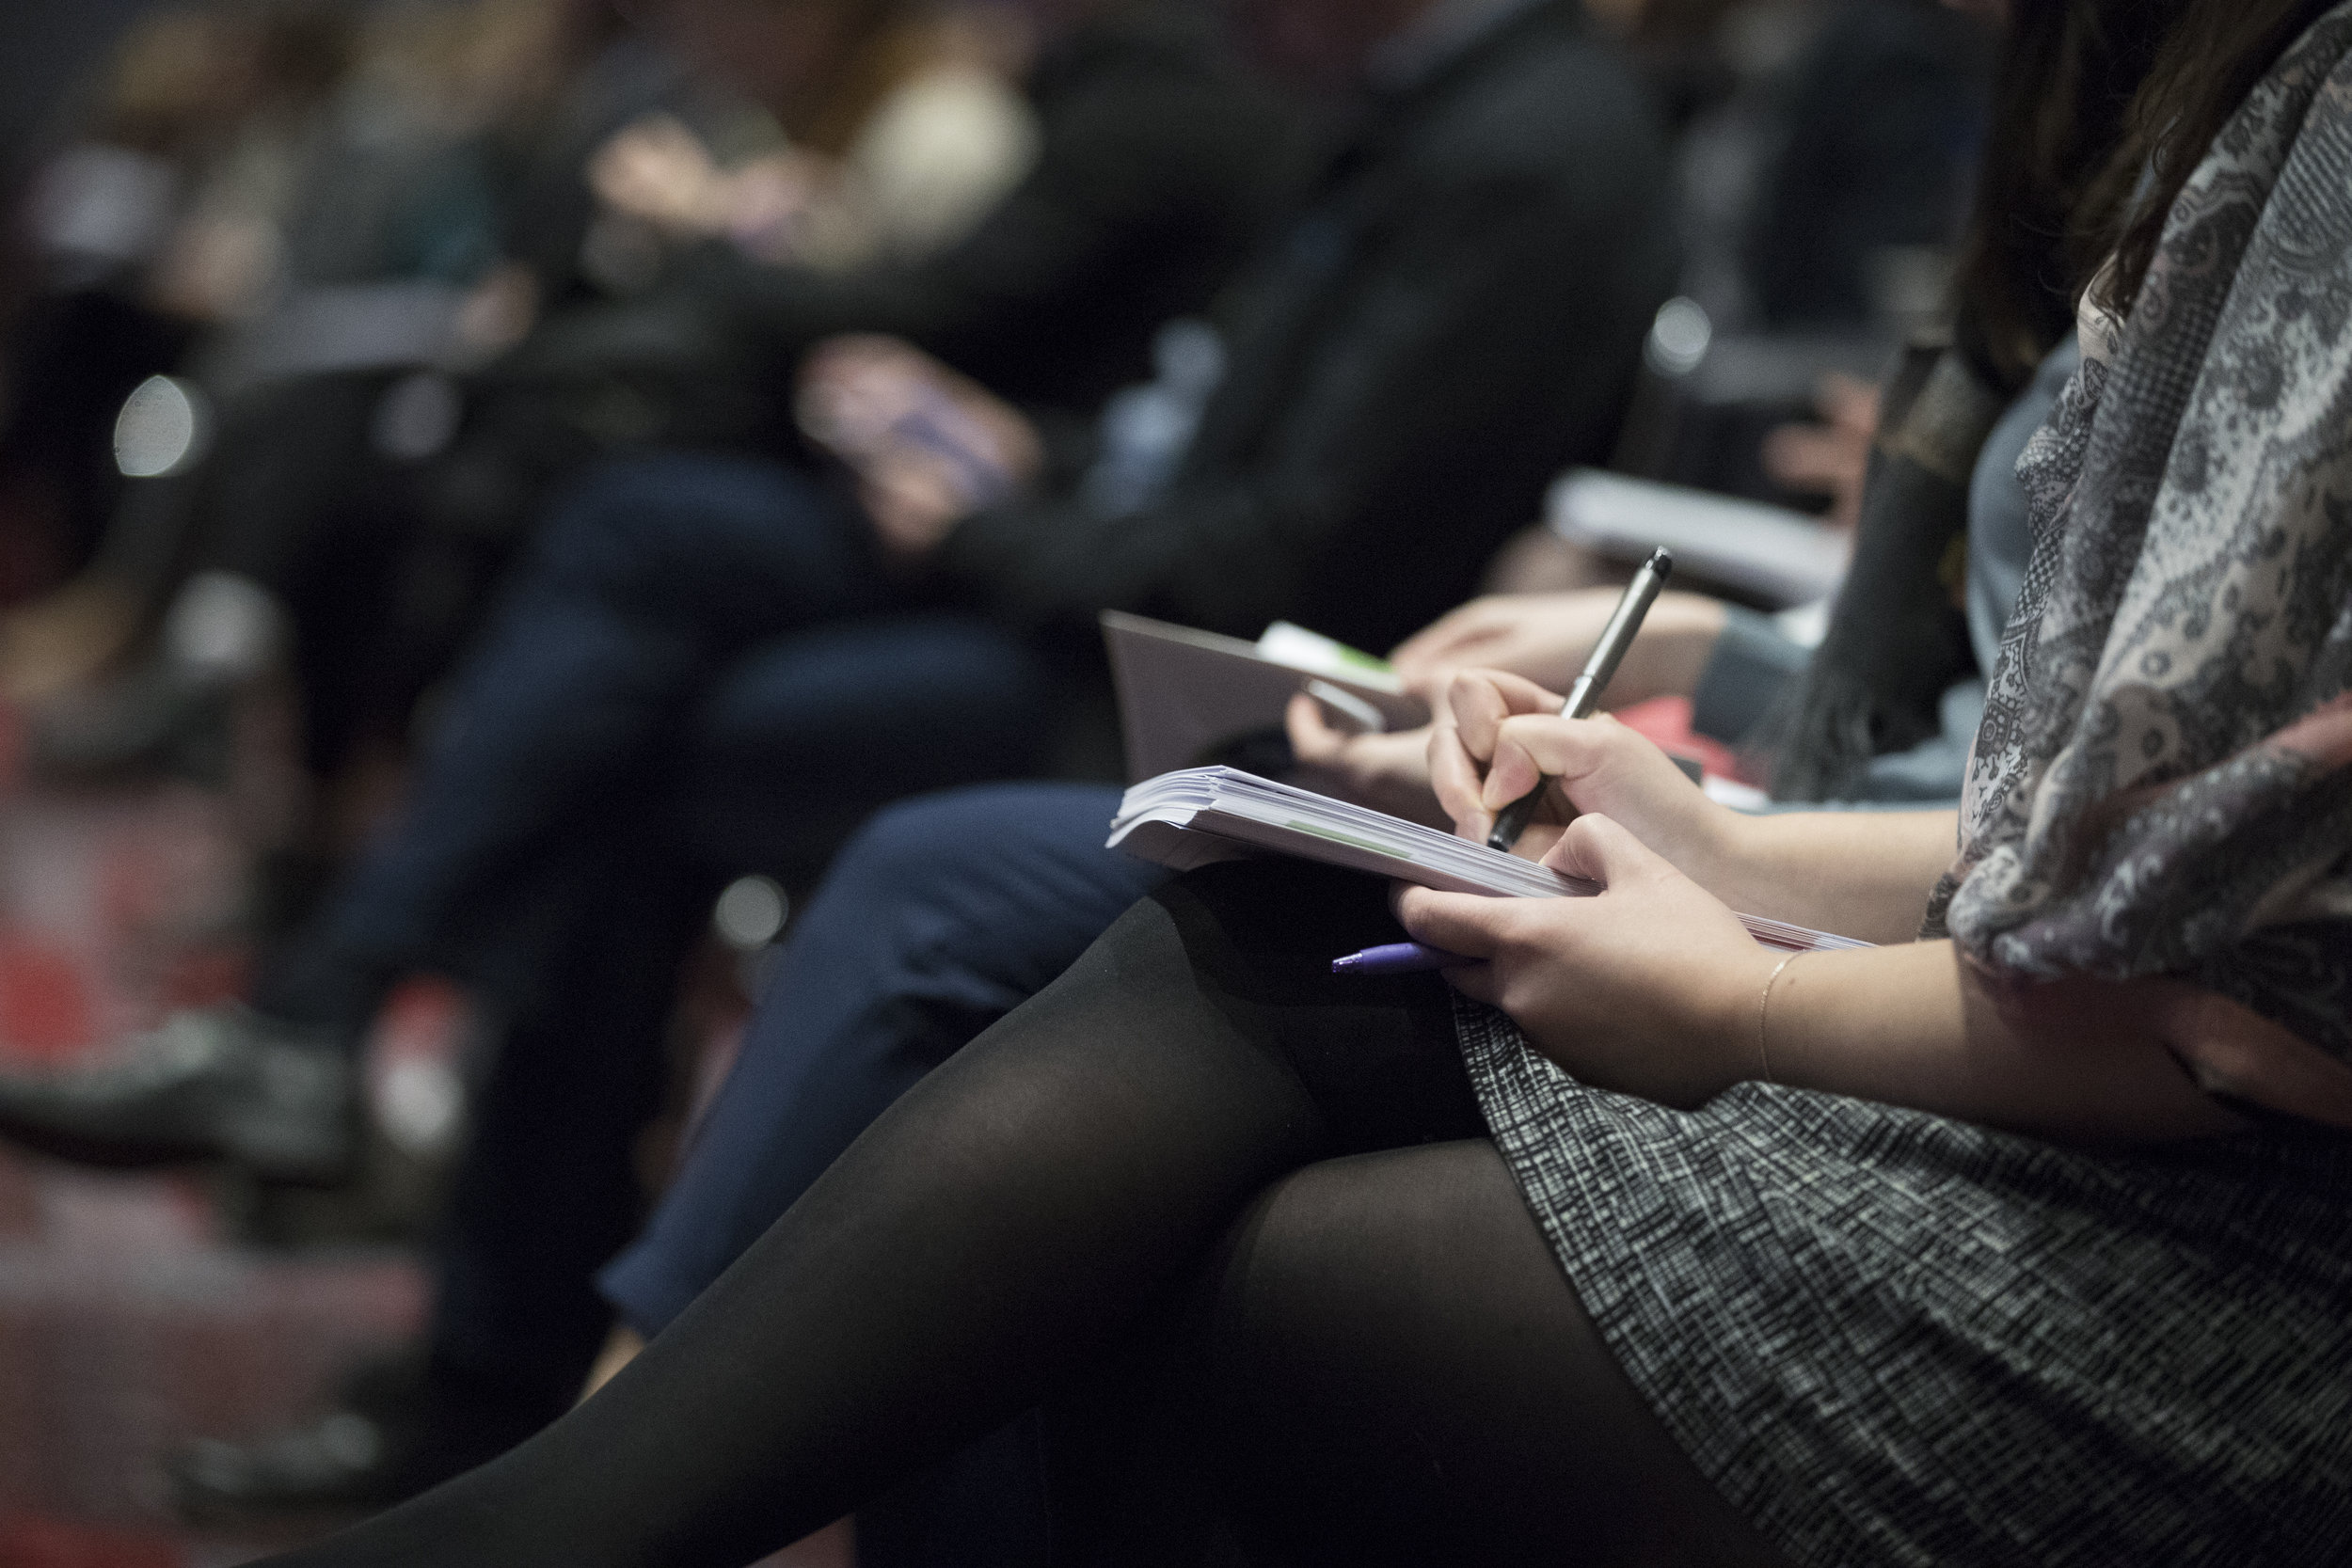 PUBLIC SPEAKING / WORKSHOPS - This option is best suited for work events or to promote a cause. Generally workshops are 1-5 hours in length, but are flexible depending on your needs. We accept opportunities as a solo class, or in conjunction with additional speakers you have booked as an event. For more information please contact us.